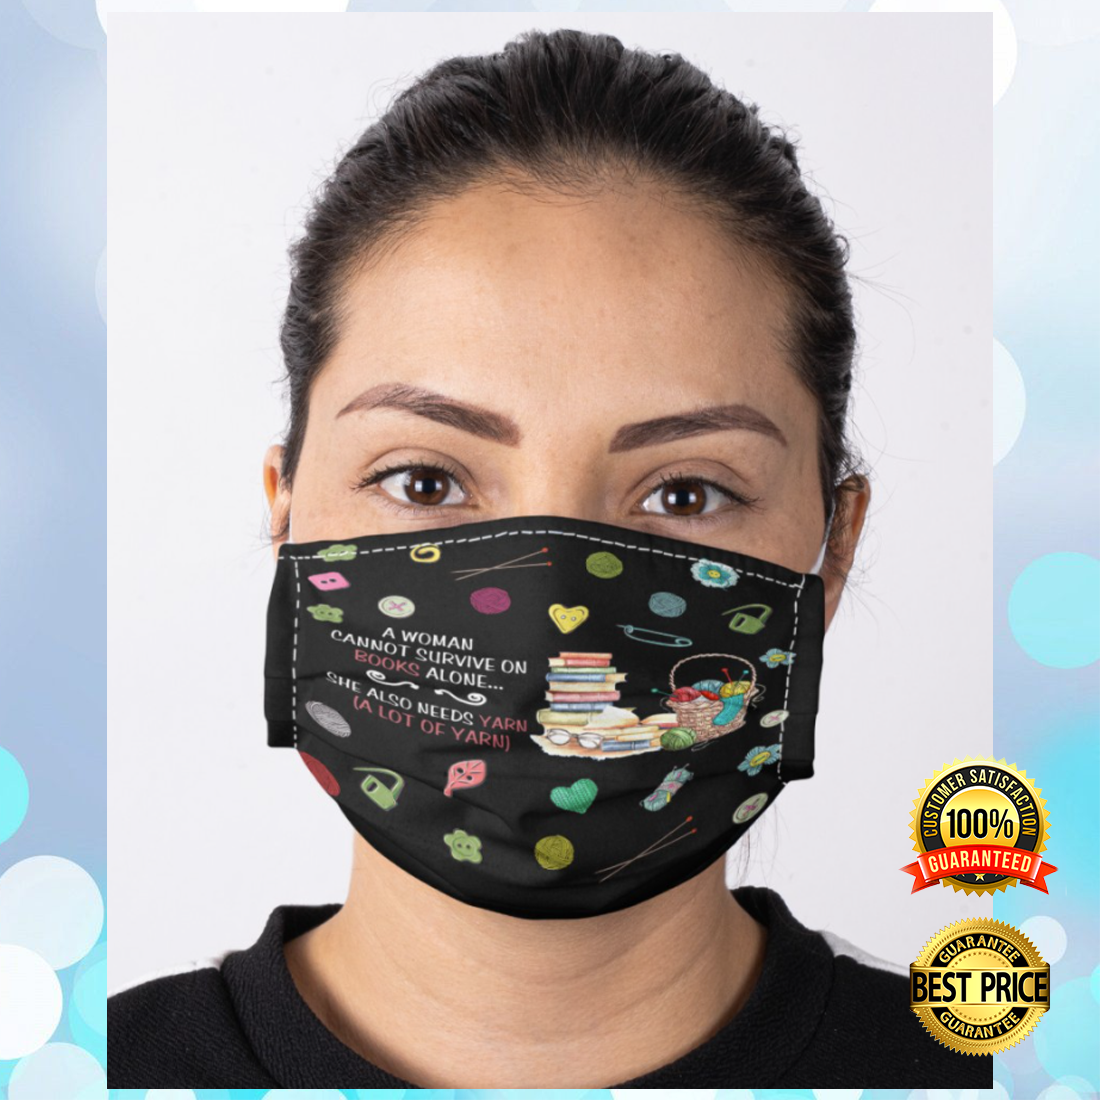 A WOMAN CANNOT SURVIVE ON BOOKS ALONE SHE ALSO NEEDS YARN CLOTH FACE MASK 6